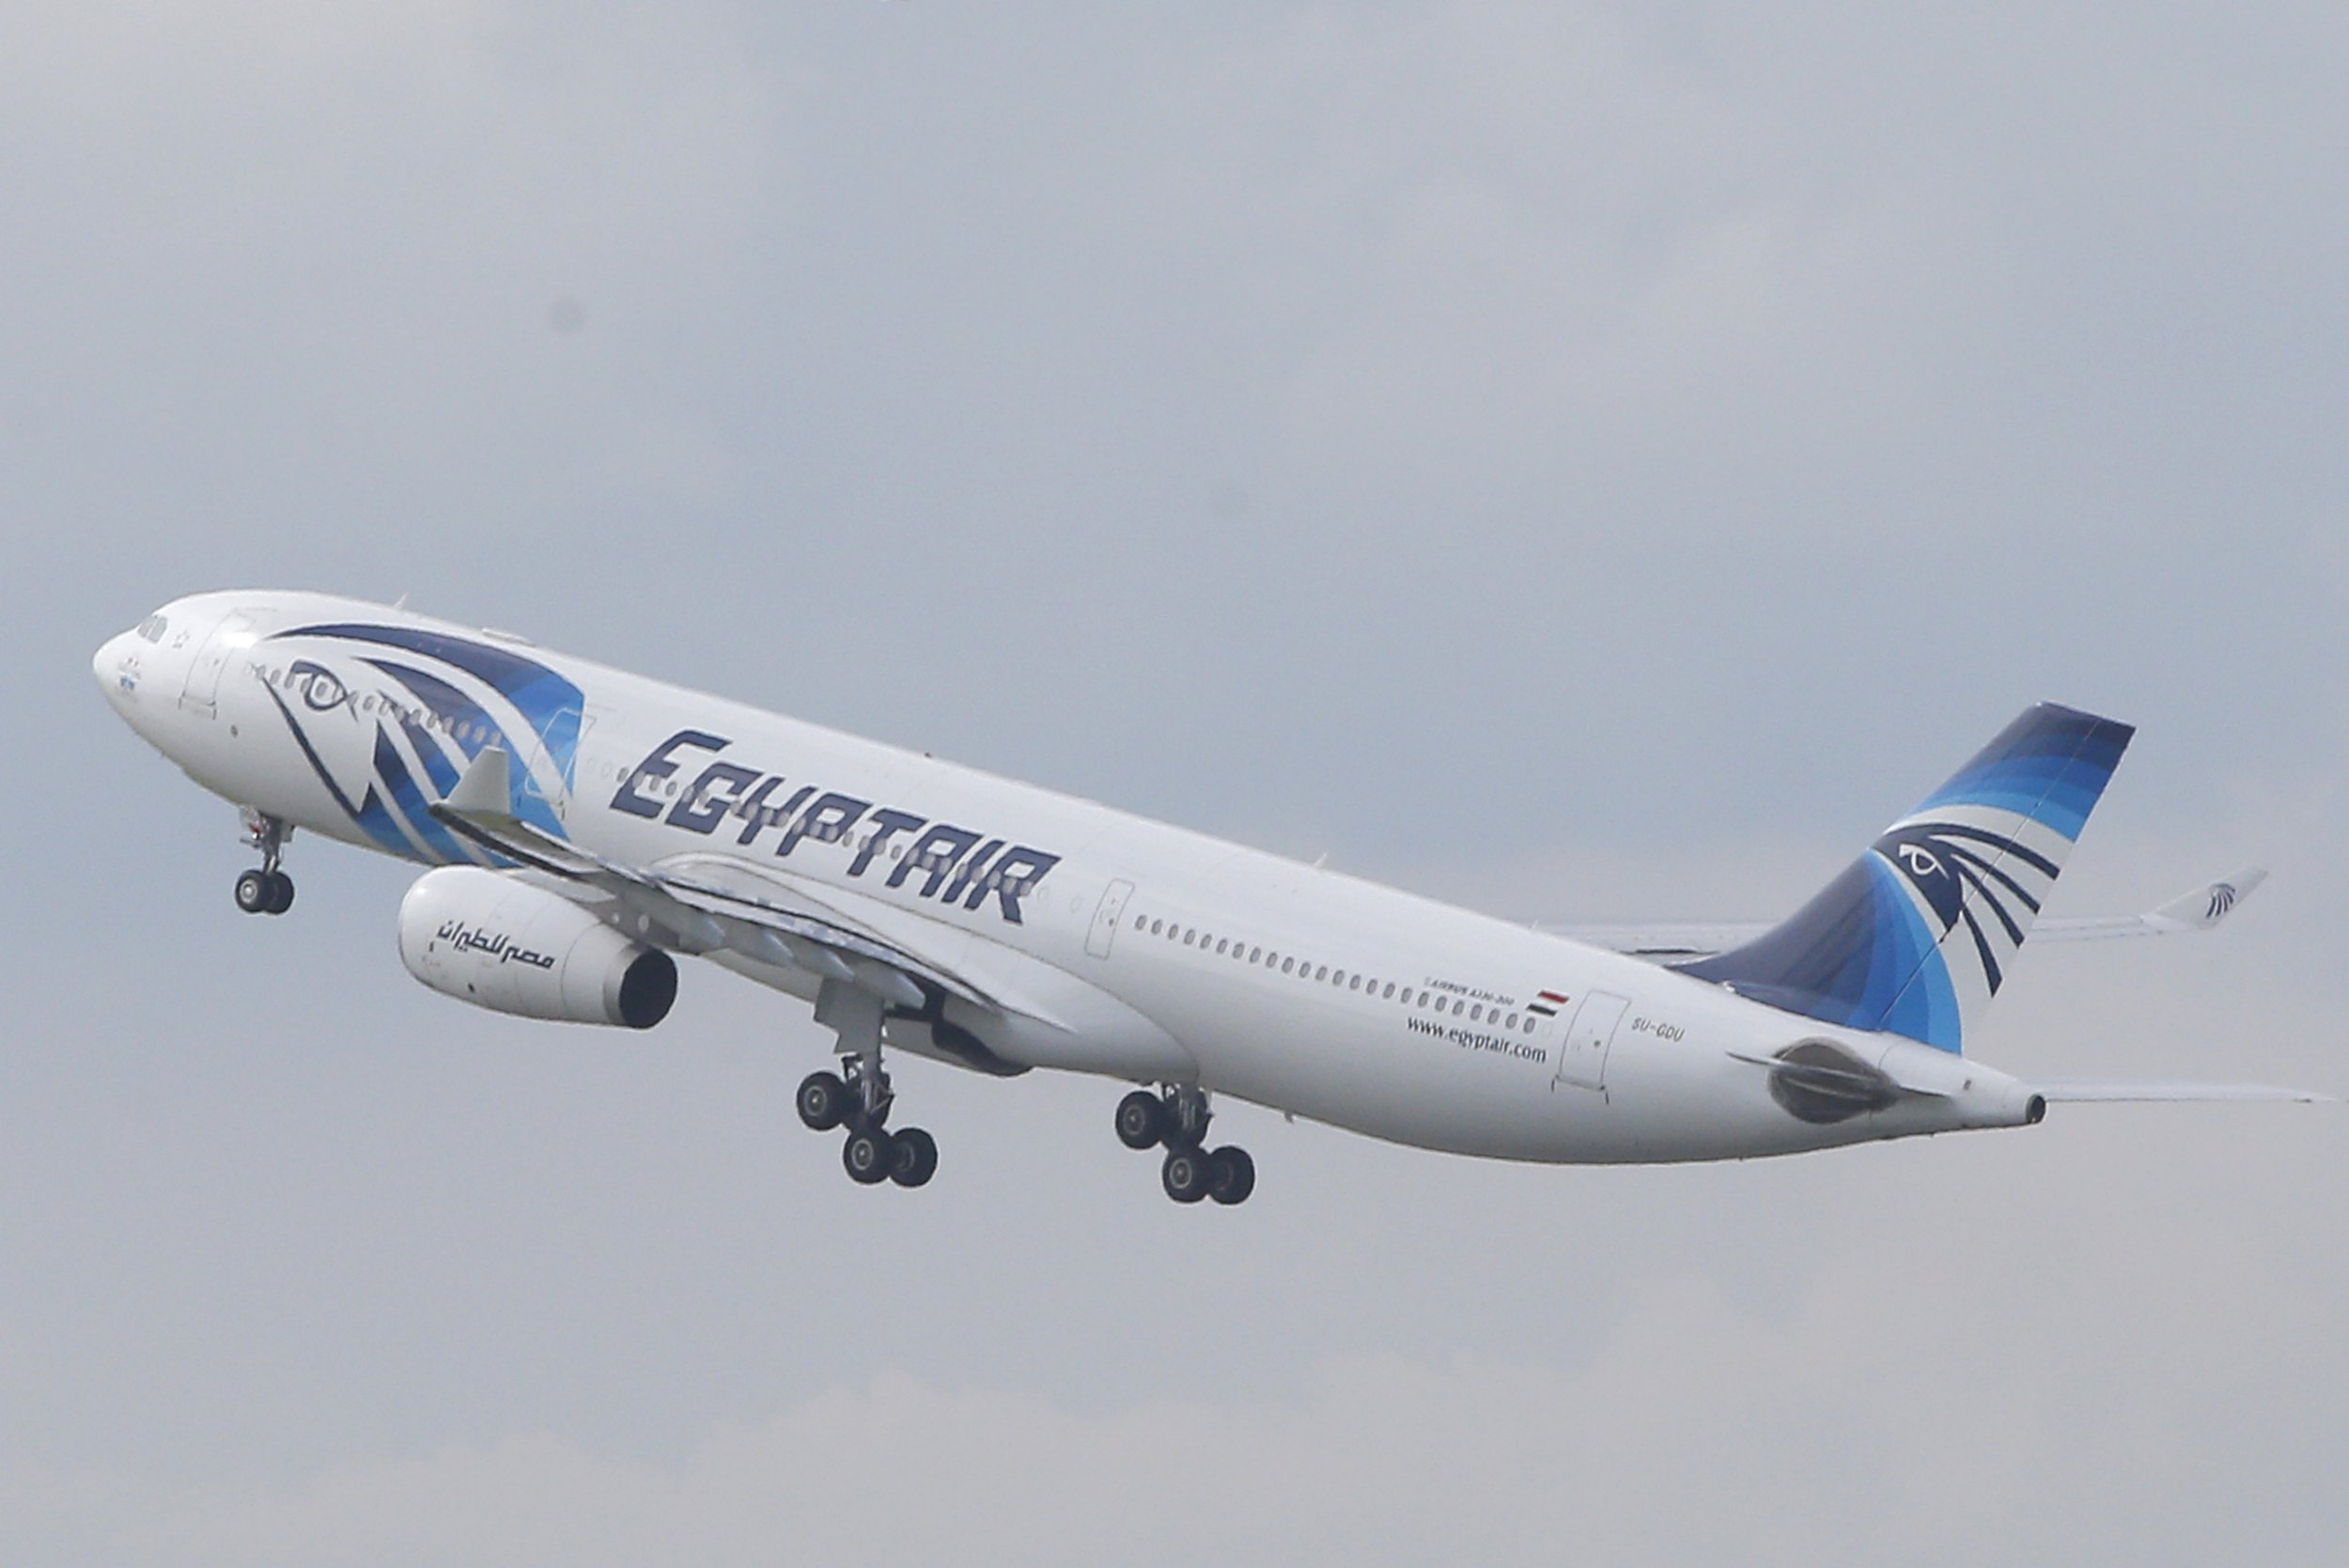 An EgyptAir Airbus A330-300 takes off for Cairo from Charles de Gaulle Airport outside of Paris, Thursday, May 19, 2016. An EgyptAir flight from Paris to Cairo with 66 passengers and crew on board crashed in the Mediterranean Sea early Thursday morning off the Greek island of Crete, Egyptian and Greek officials said. (AP Photo/Christophe Ena)